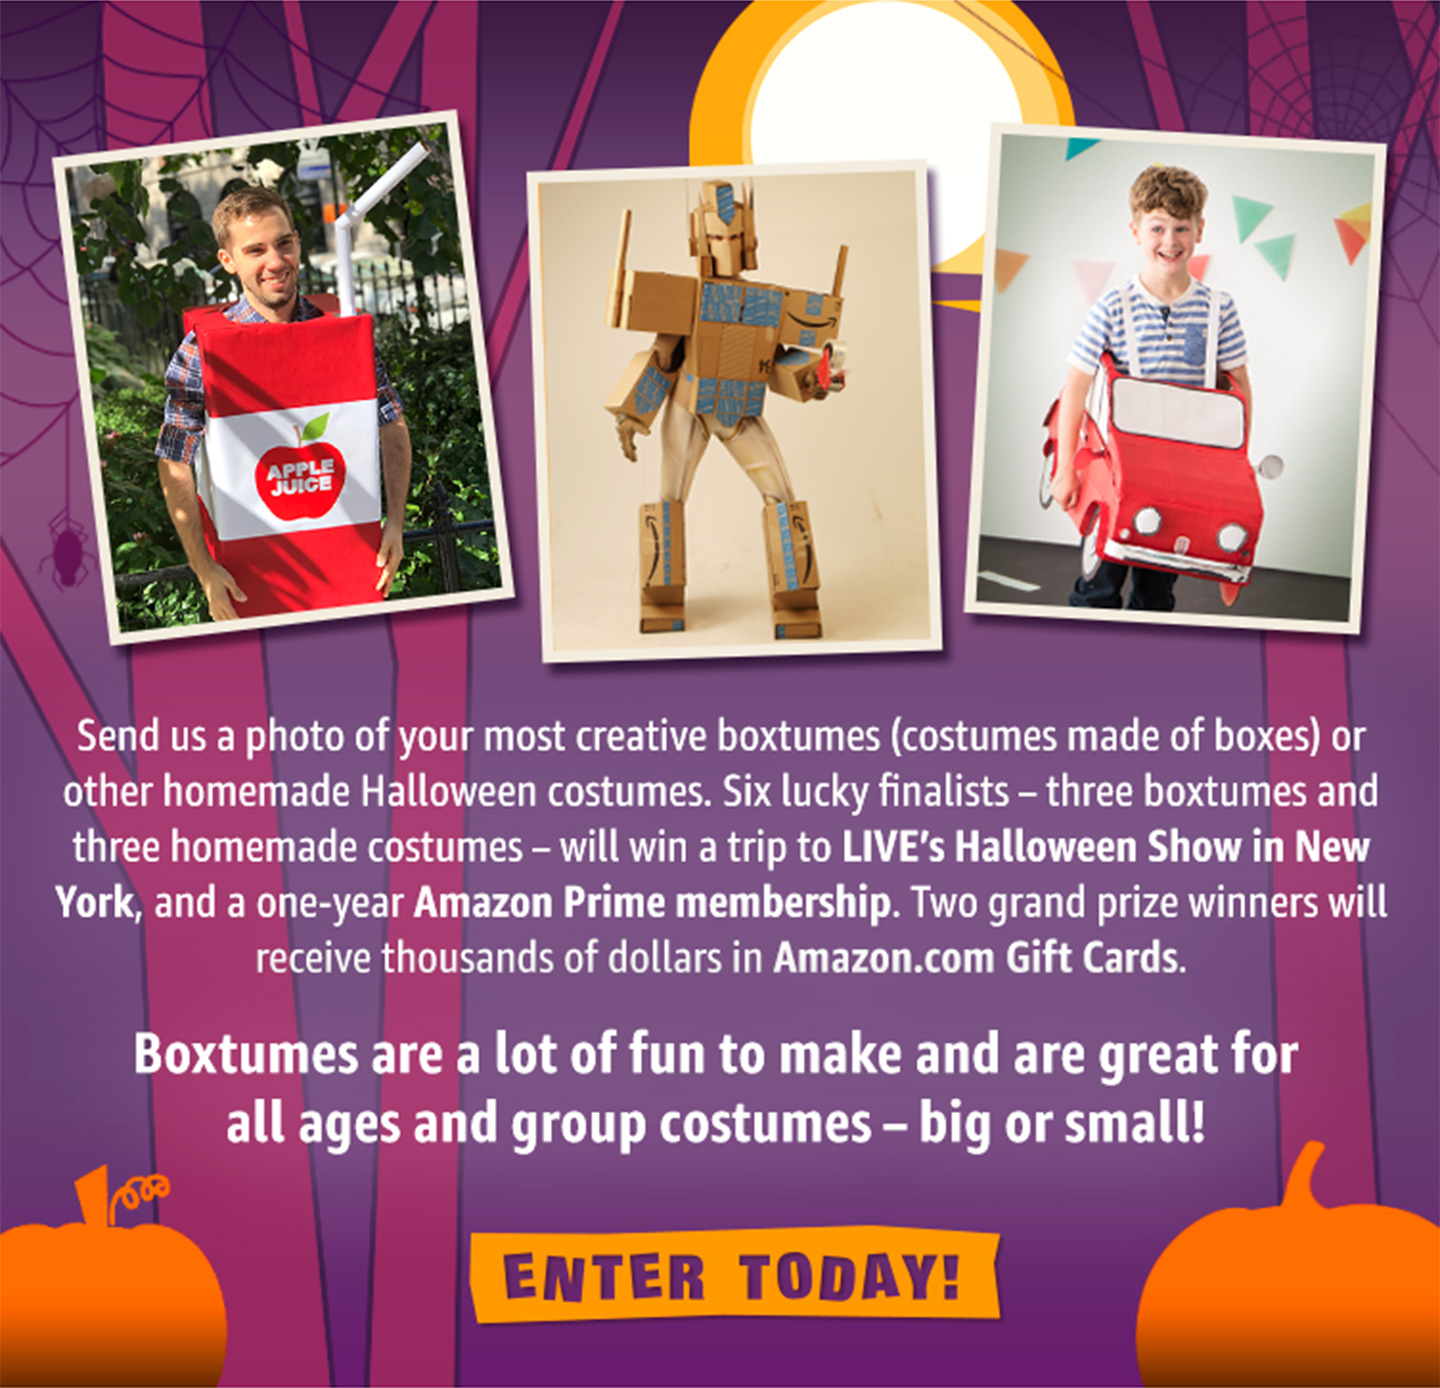 Share a photo of your Halloween costume made out of boxes for your chance to win $1,000, $5,000. Sixfinalists will be flown to New York City to show their costumes on the Kelly & Ryan show